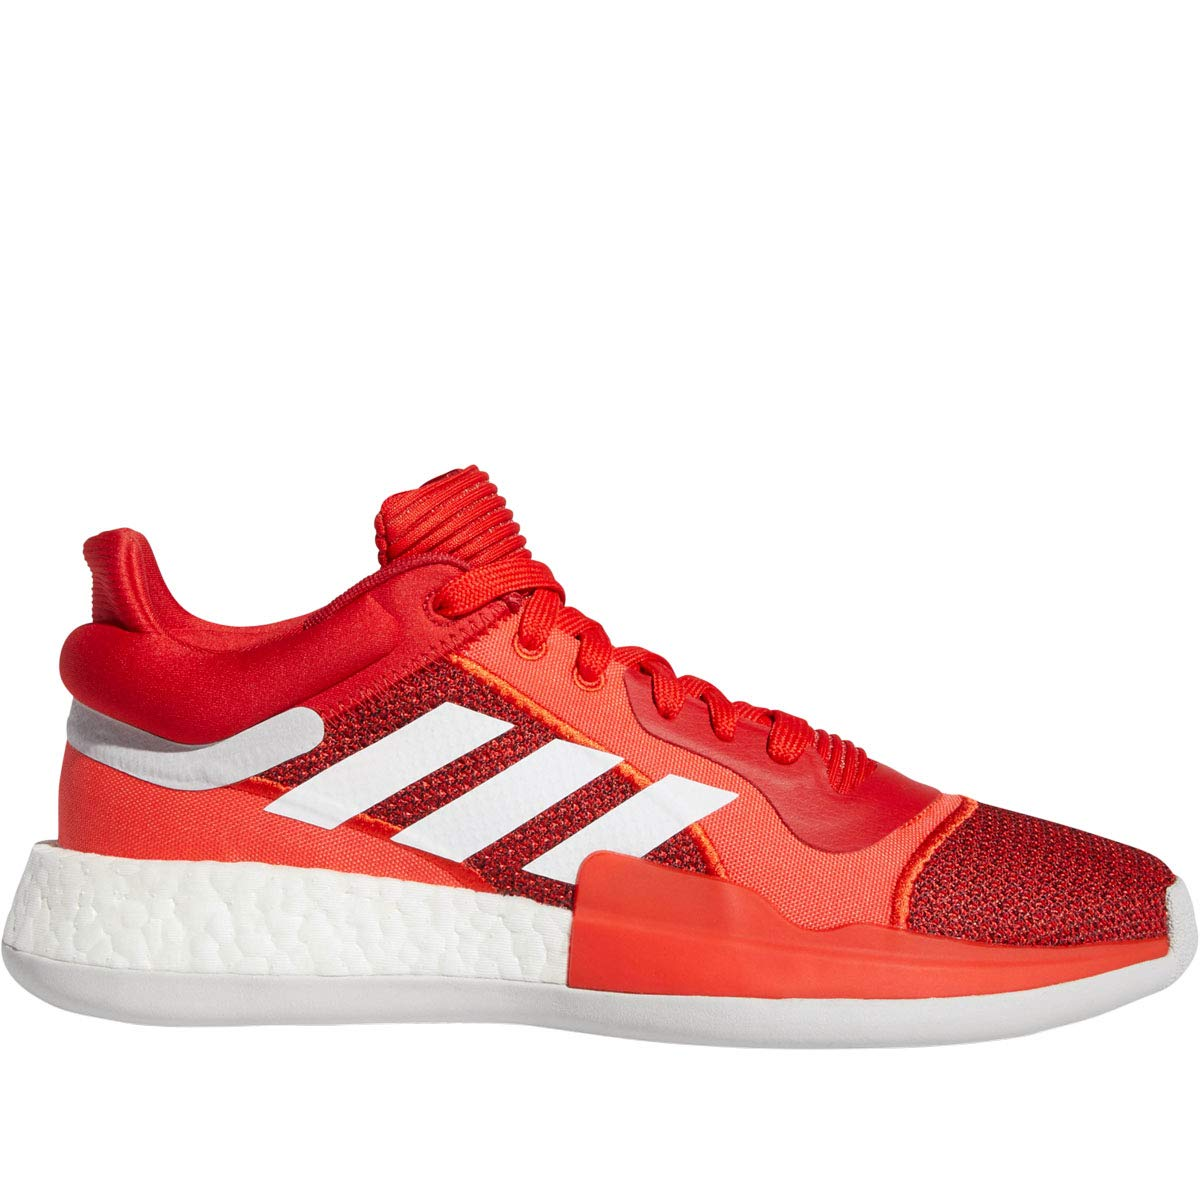 Adidas Marquee Boost Low - ACTrot FTWWHT Scarle